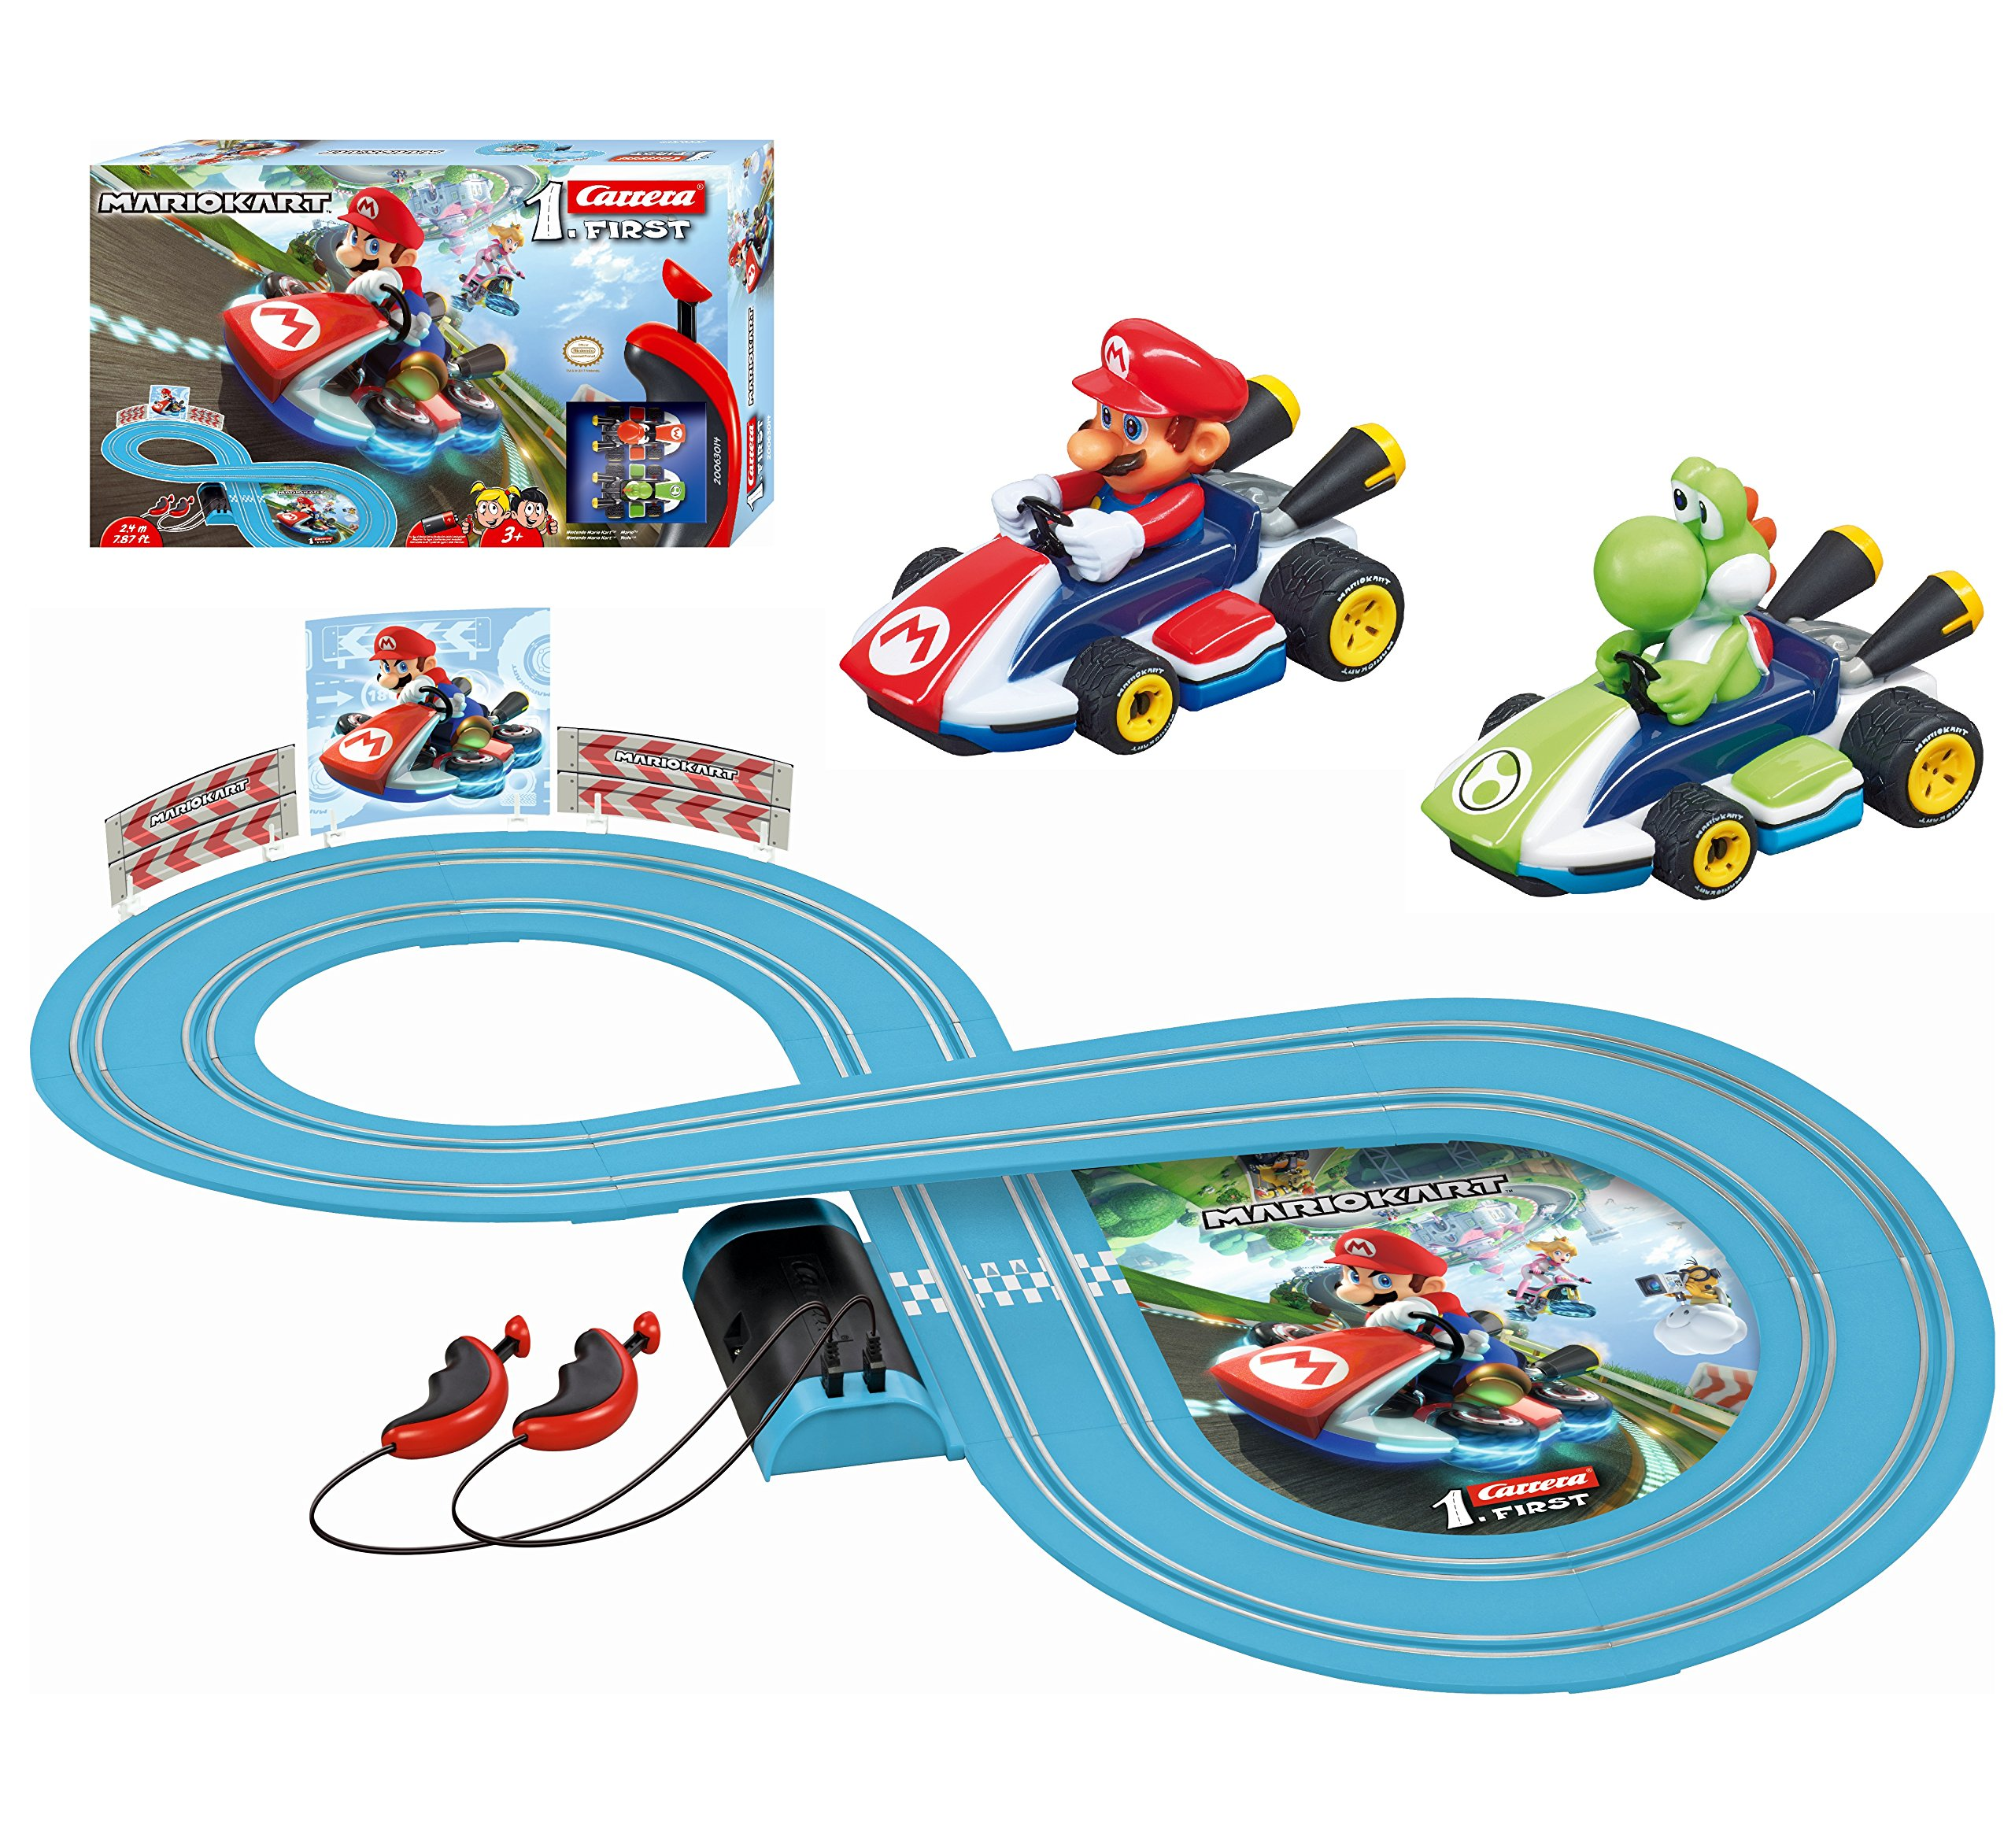 Carrera First Nintendo Mario Kart Slot Car Race Track - Includes 2 Cars: Mario and Yoshi and Two-Controllers - Battery-Powered Beginner Set for Kids Ages 3 Years and Up by Carrera